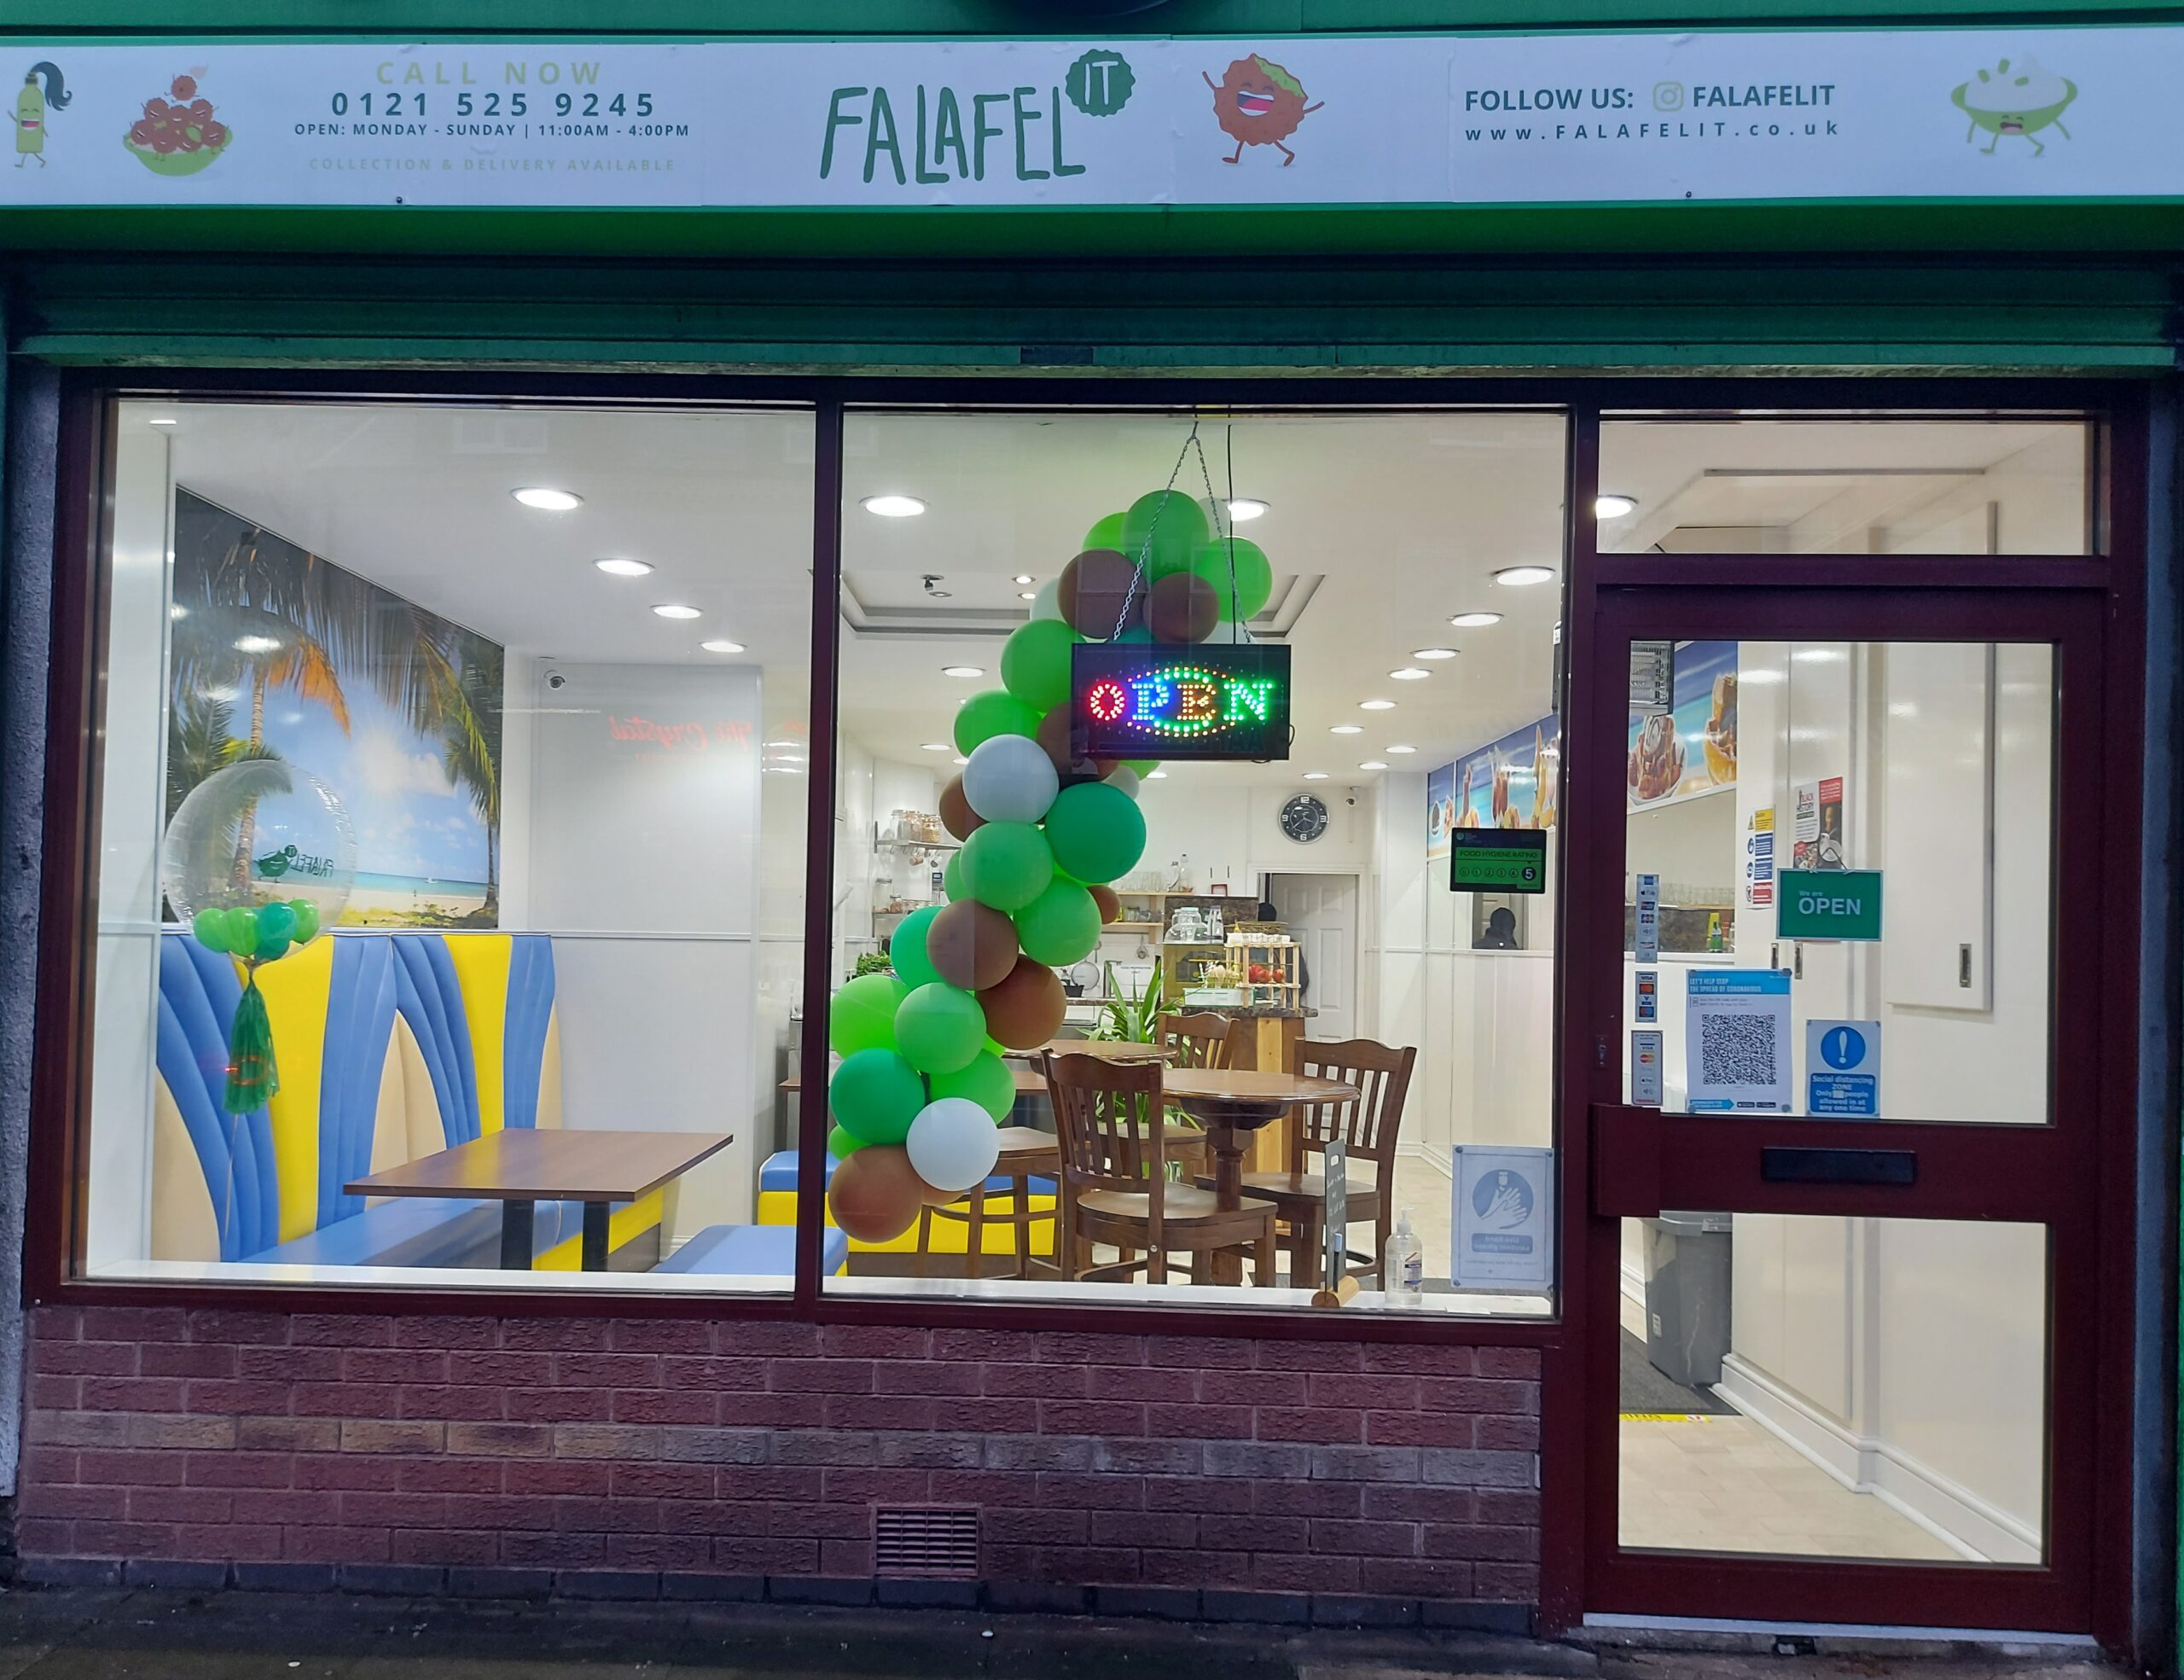 Celebrating our Small Businesses – Falafel It